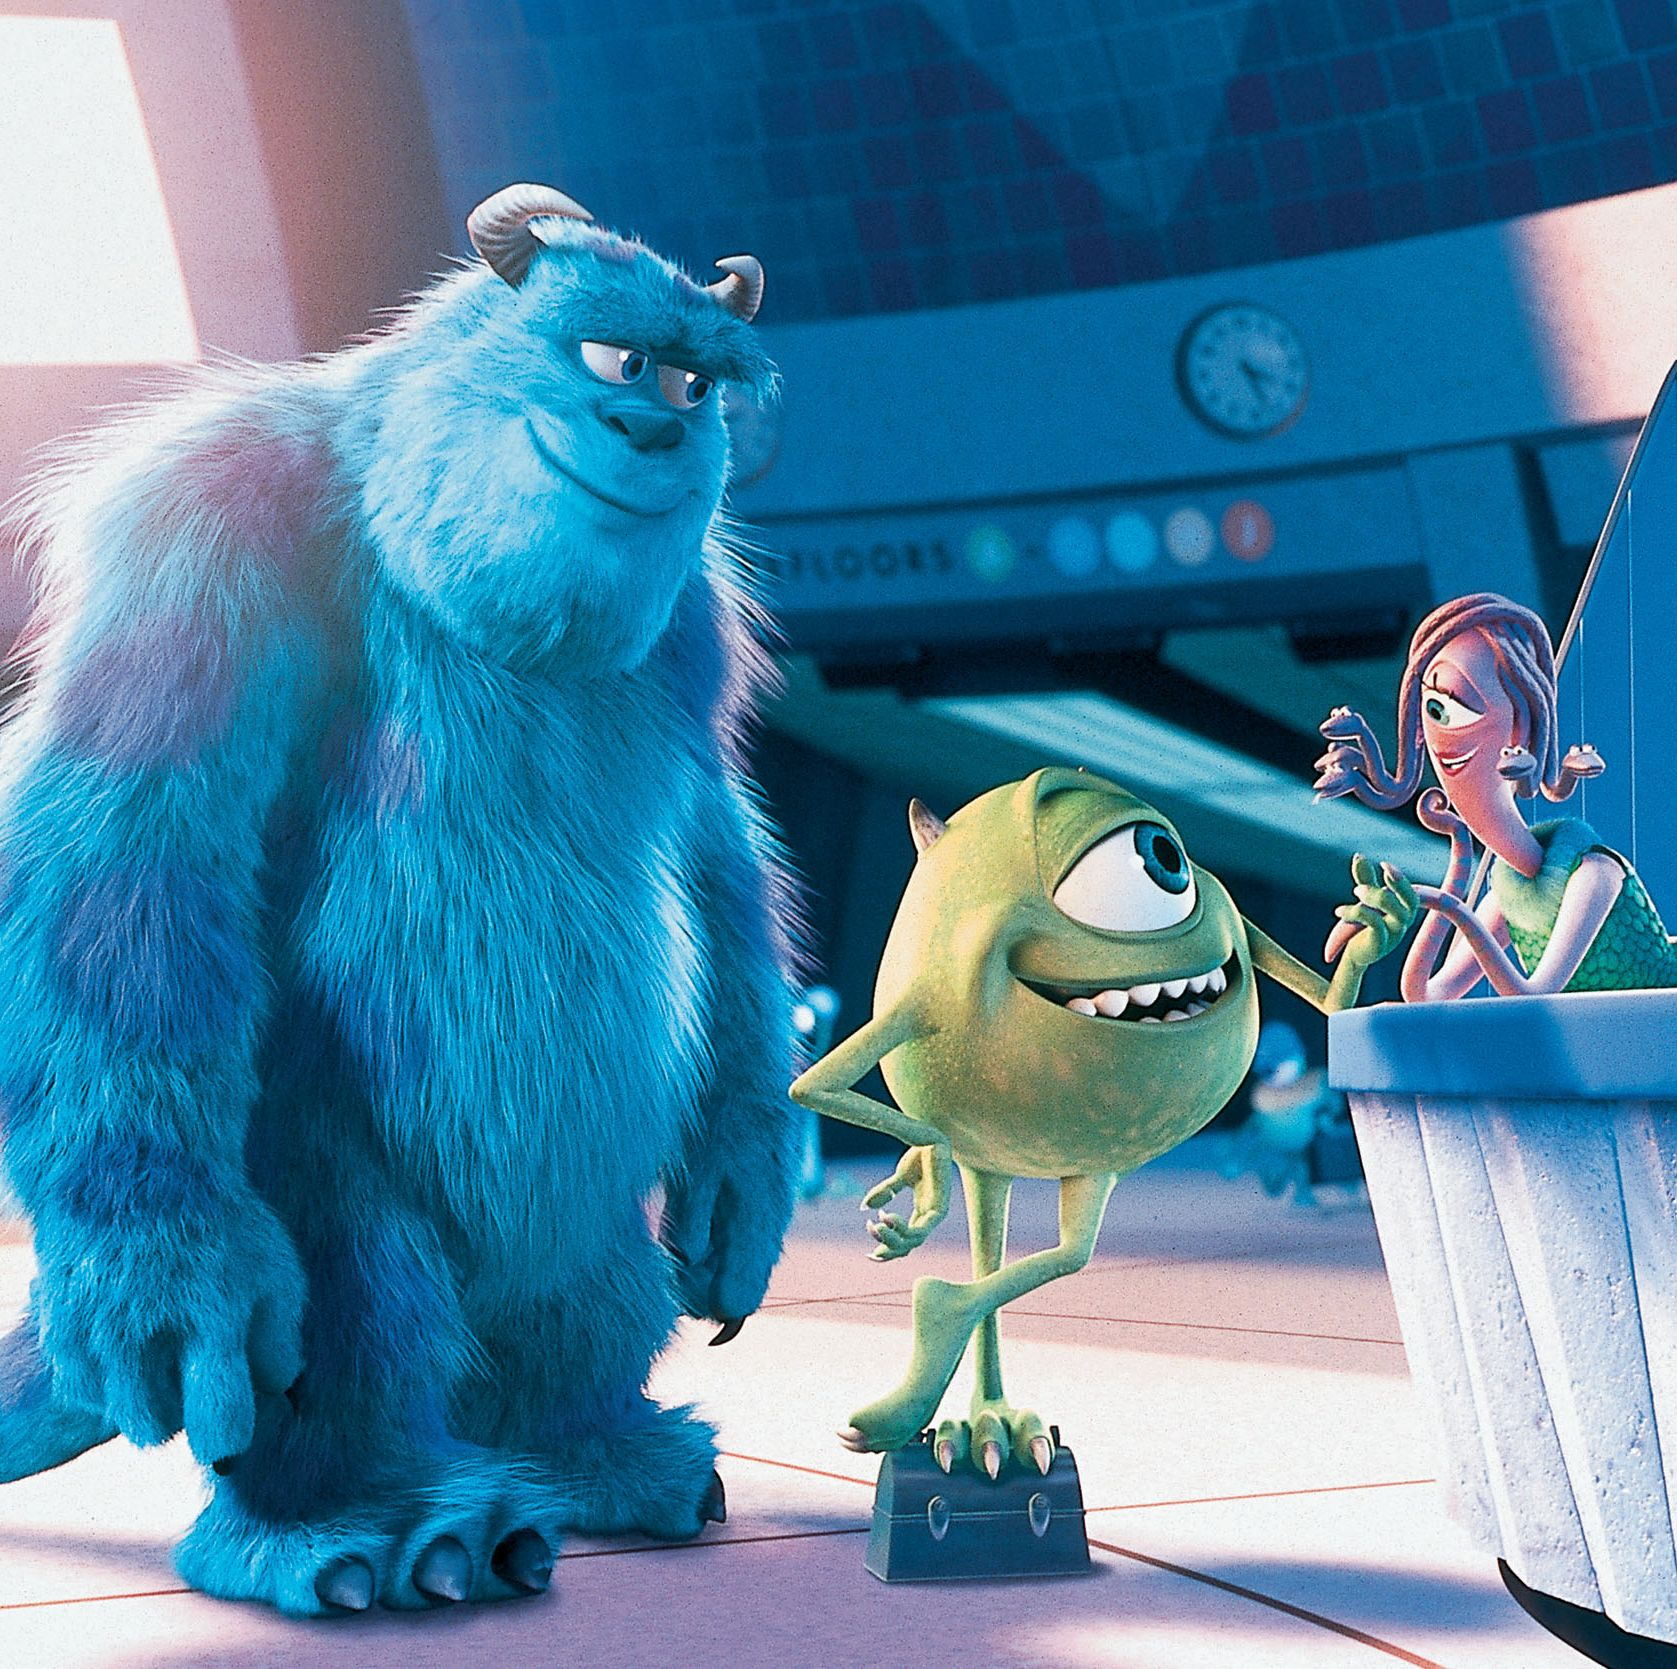 Monsters, Inc TV series for Disney streaming service confirmed to bring back iconic original stars